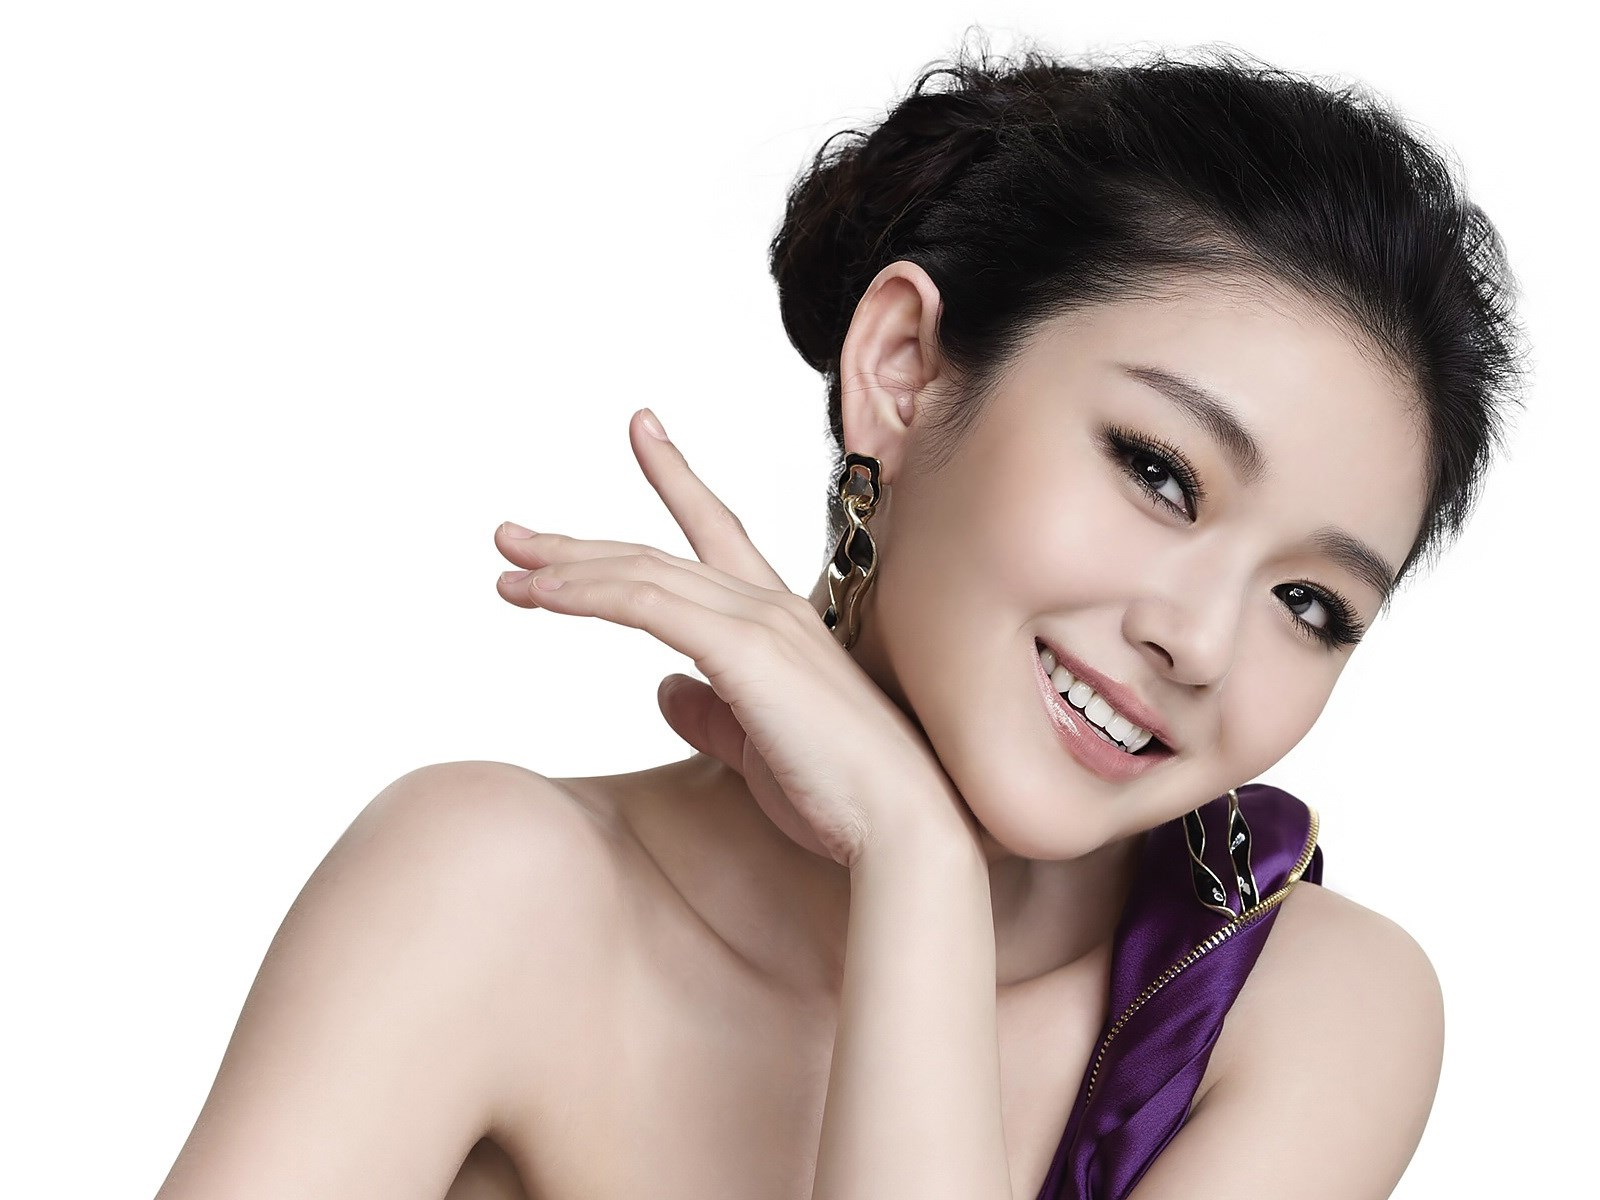 1600x1200 - Barbie Hsu Wallpapers 26